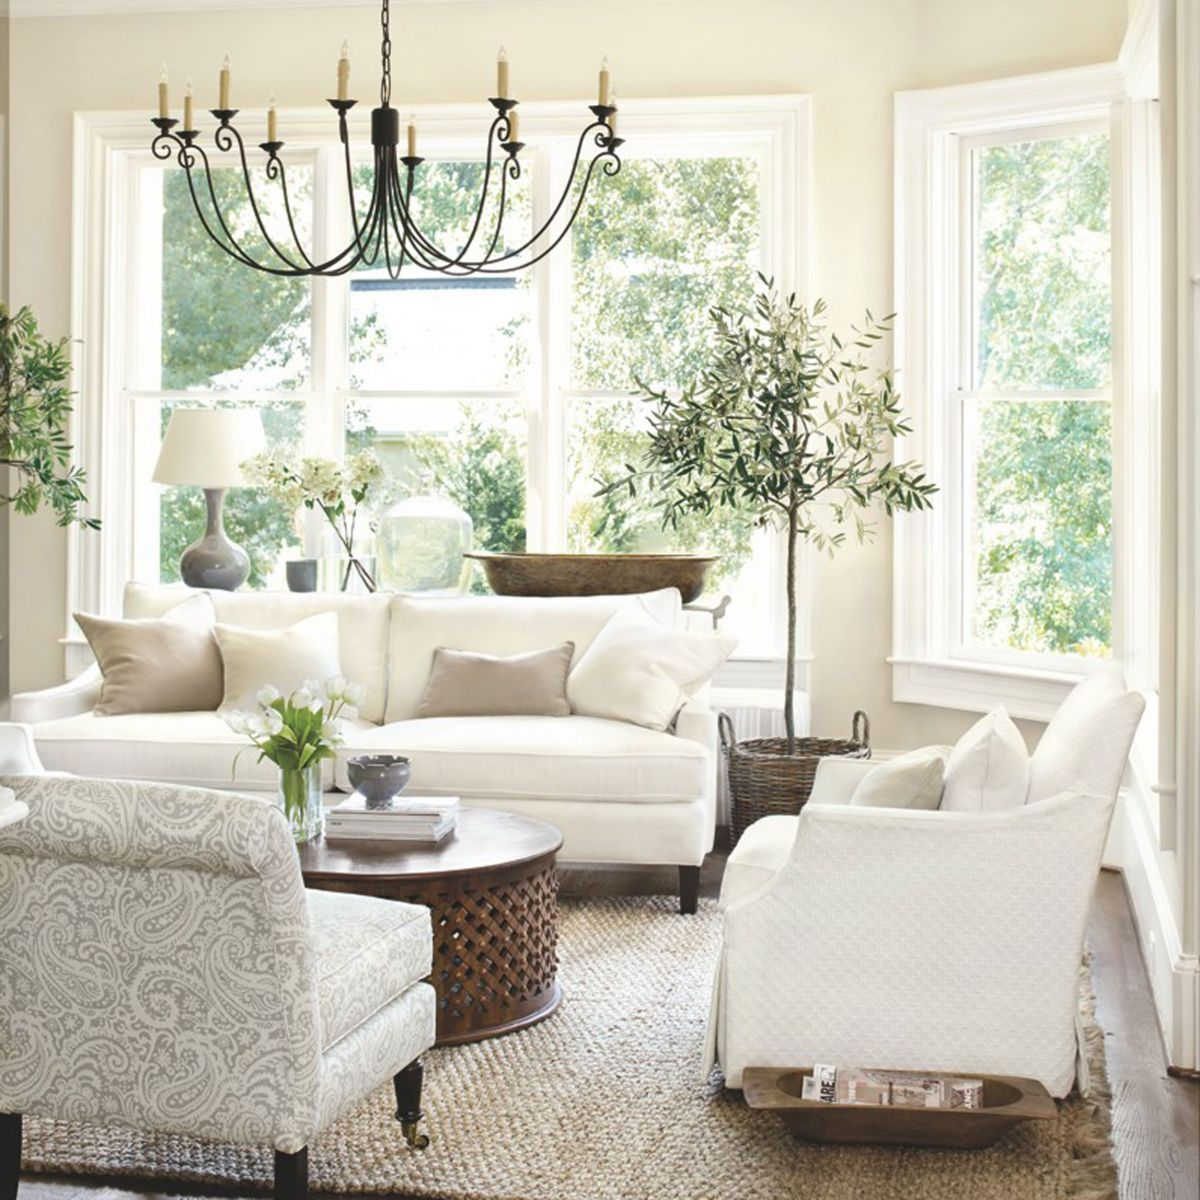 Living Room Furniture Living Room Decor Ballard Designs Neutral Rooms Pinterest Living